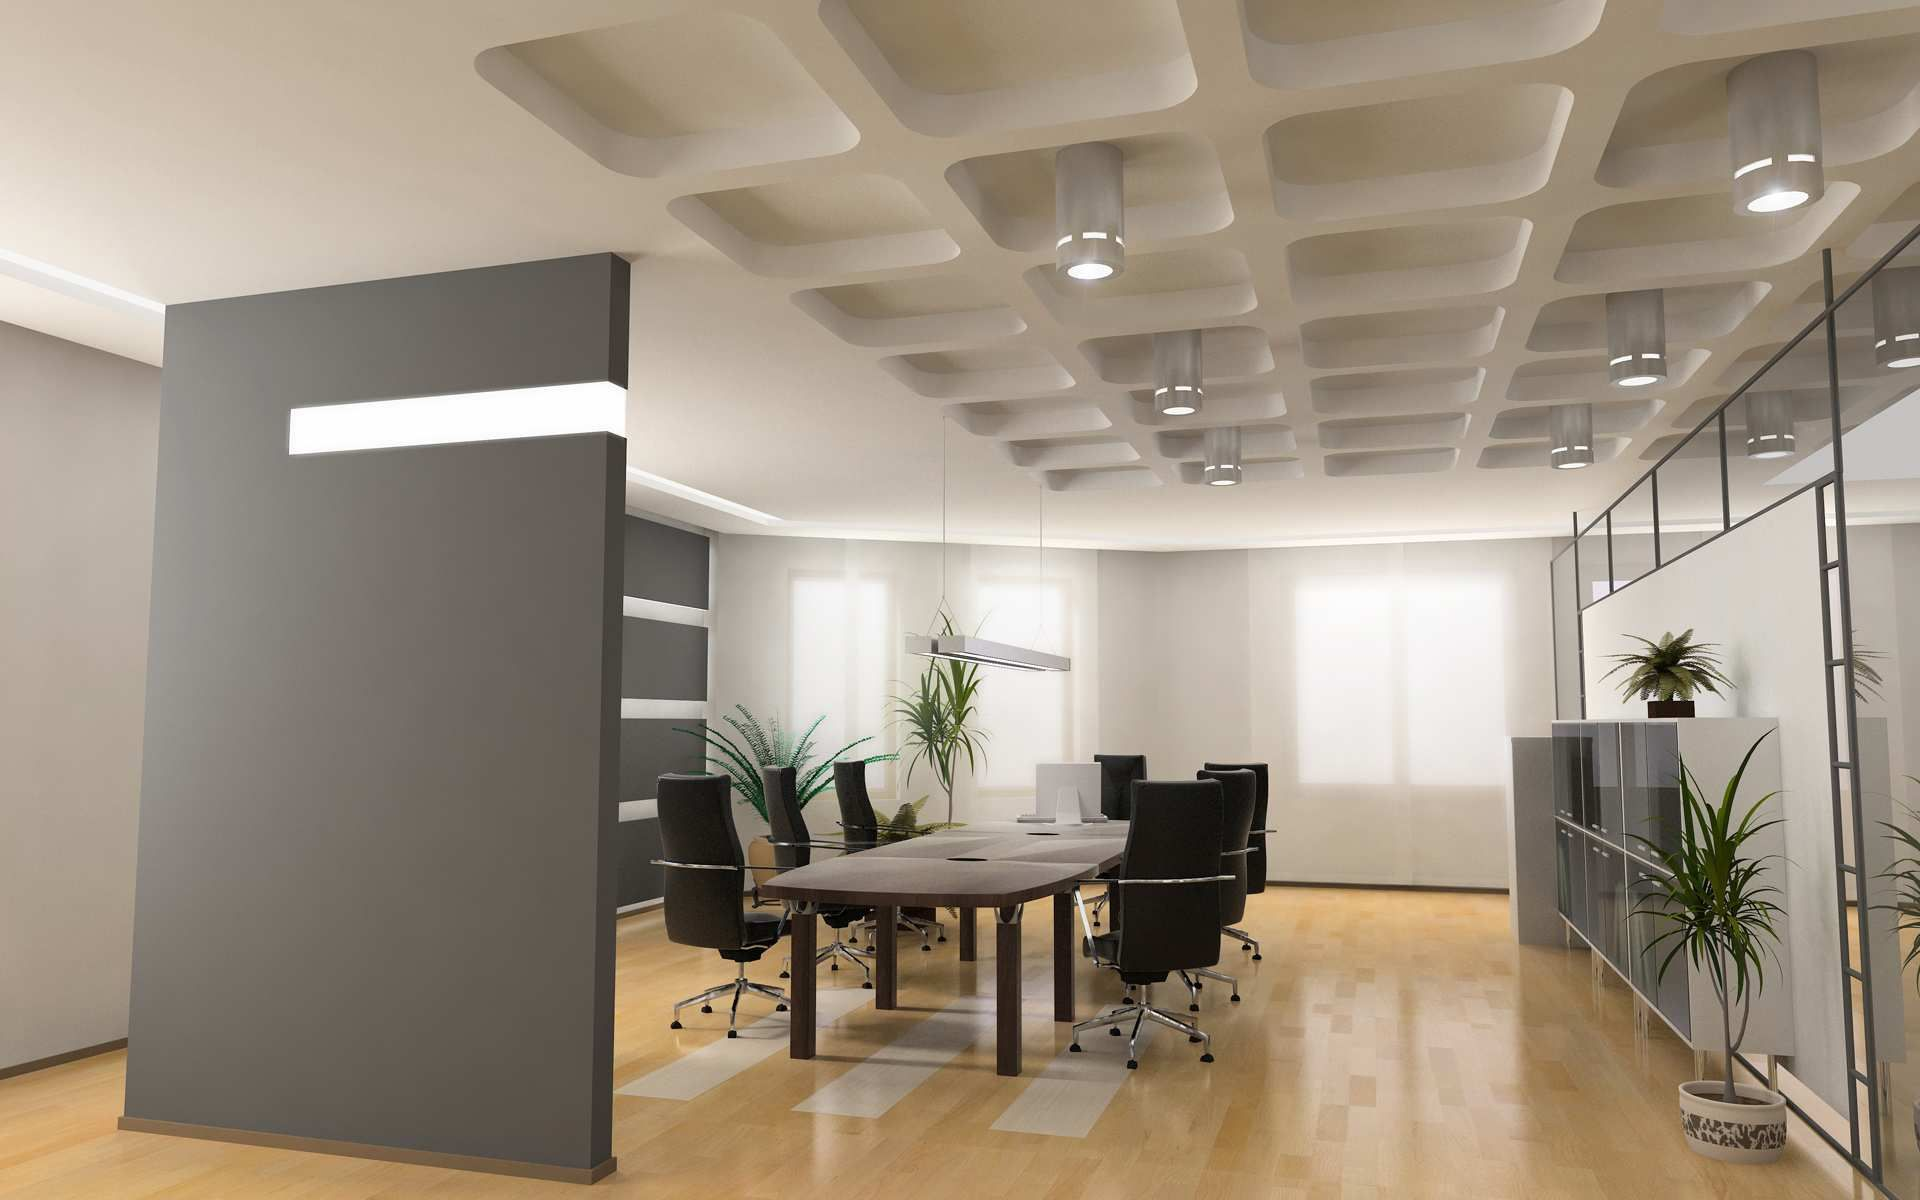 1000 images about office designs on pinterest yellow conference room and offices o decorating ideas i - Corporate Office Design Ideas